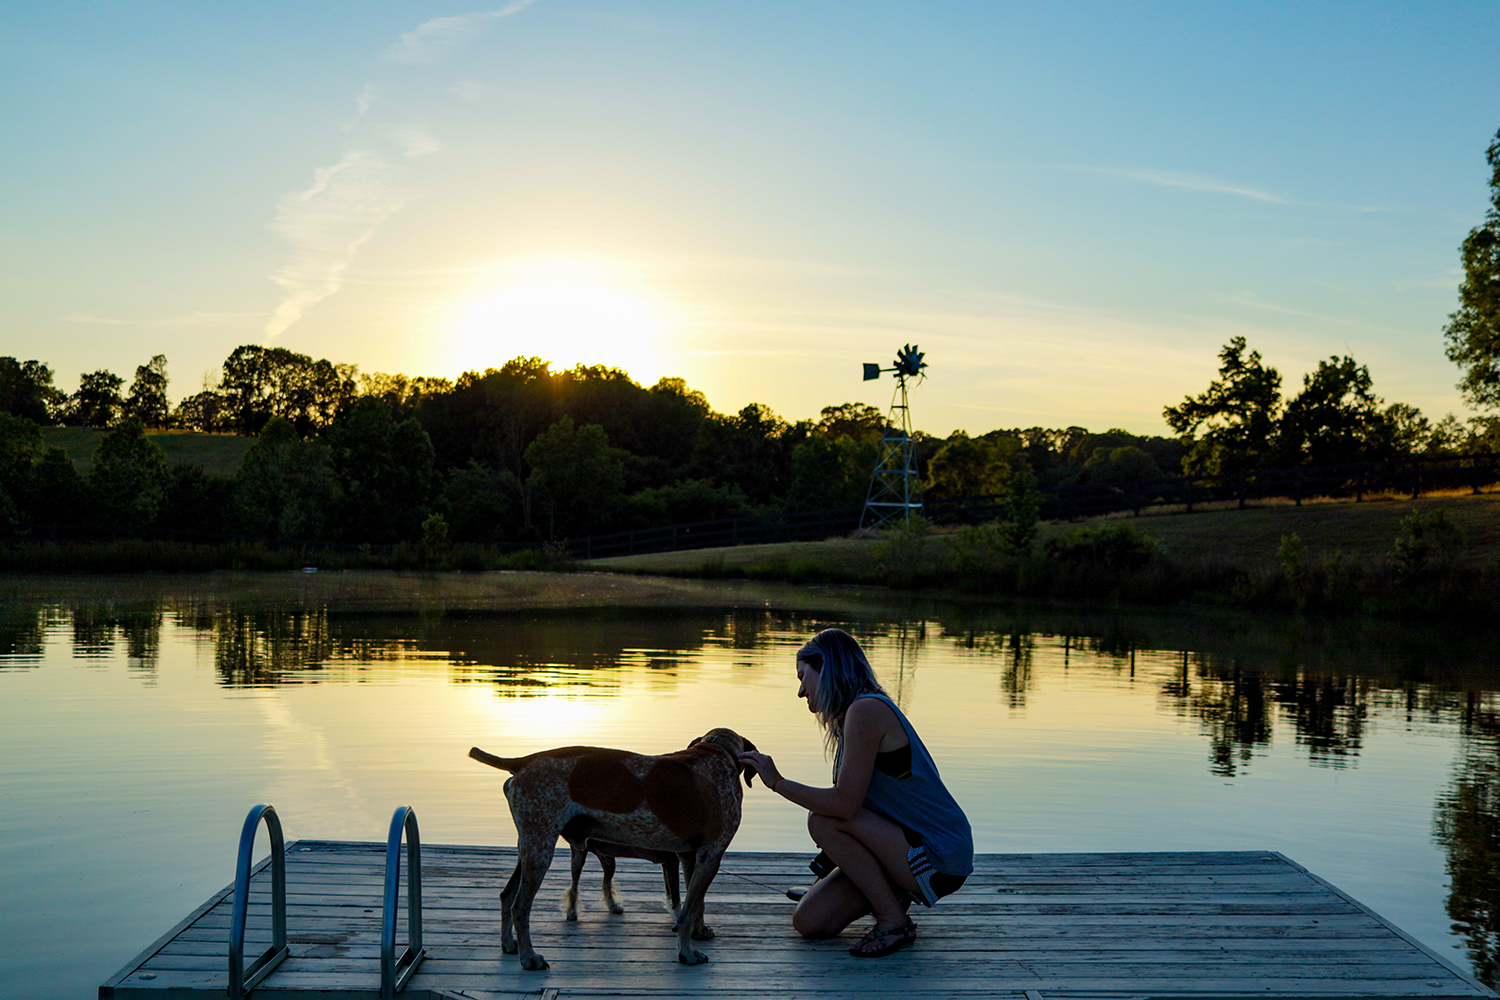 Image of a woman and a dog on a dock